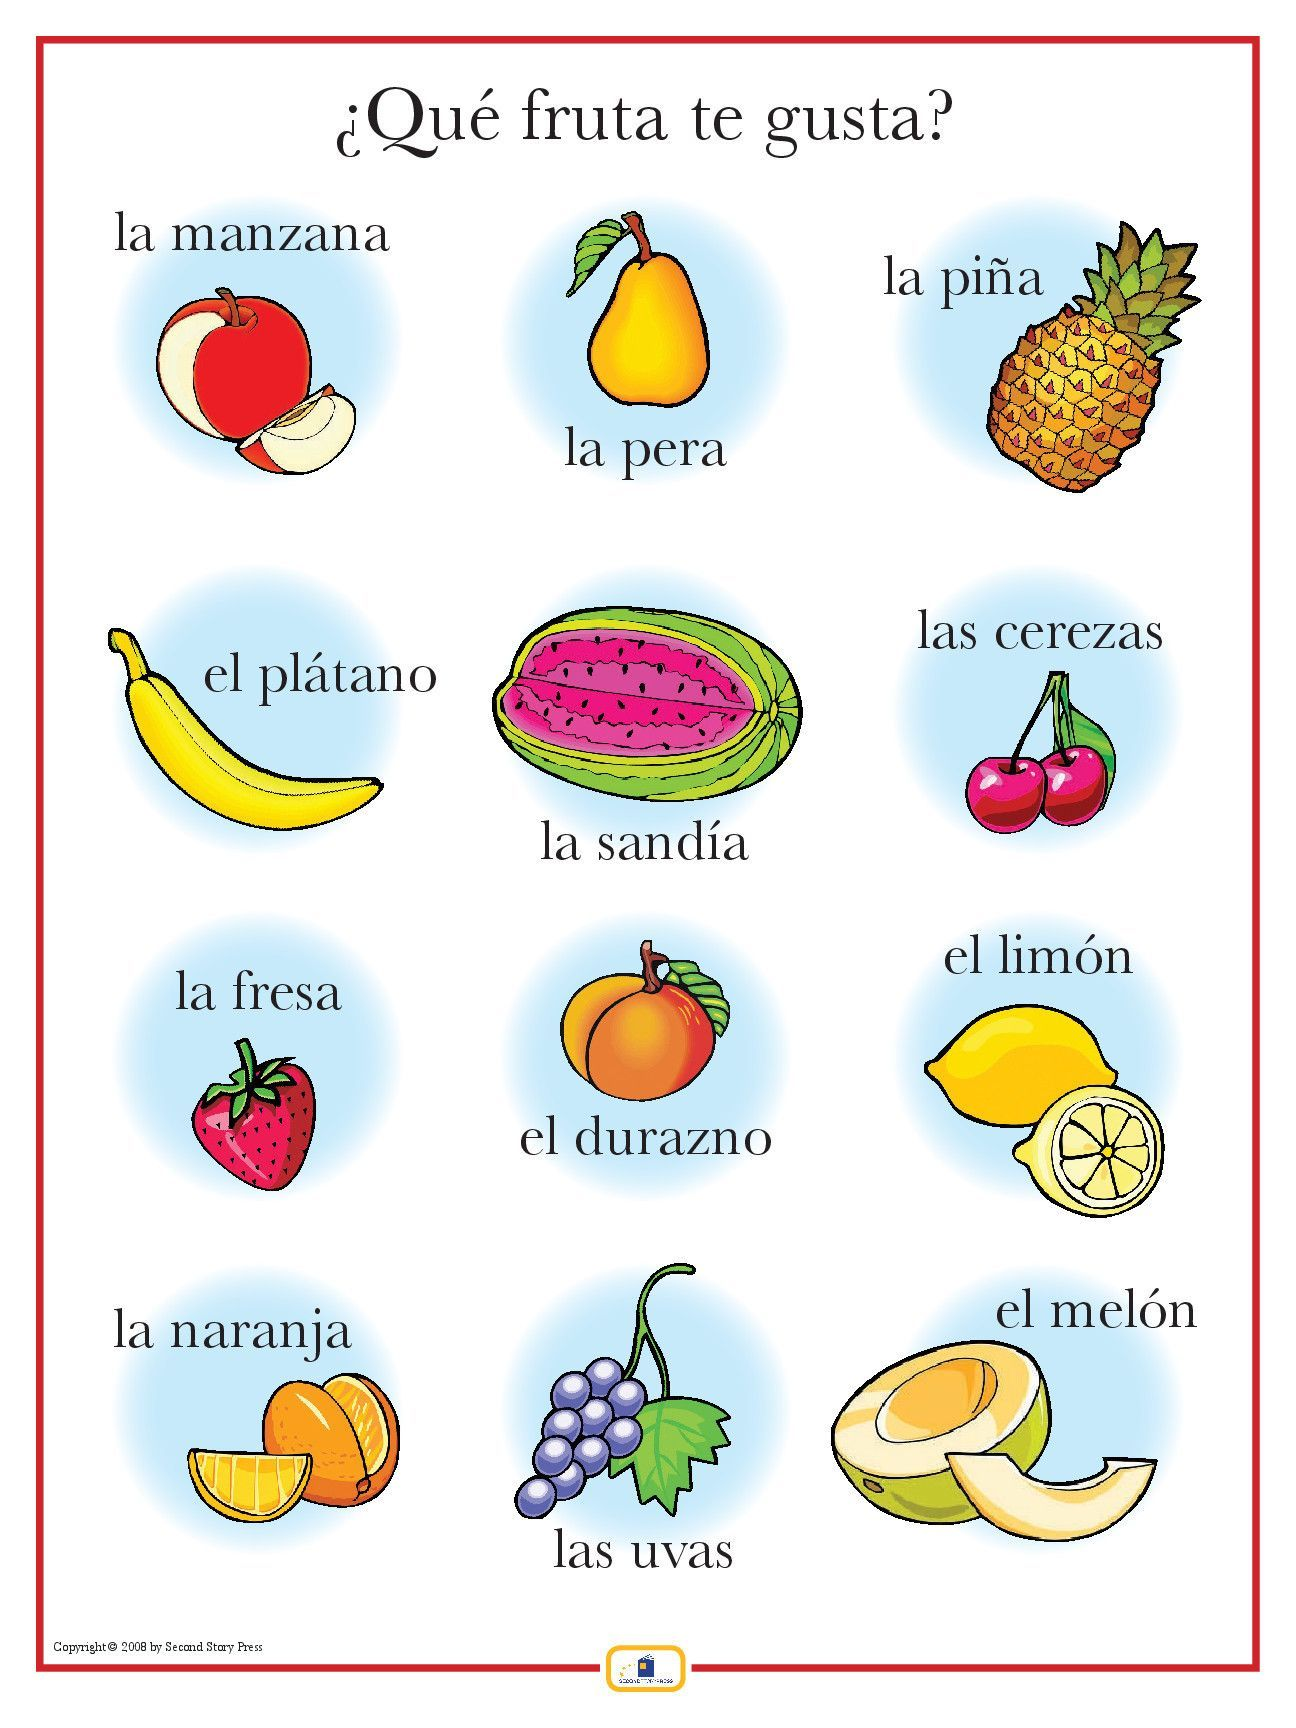 Spanish Fruits Poster